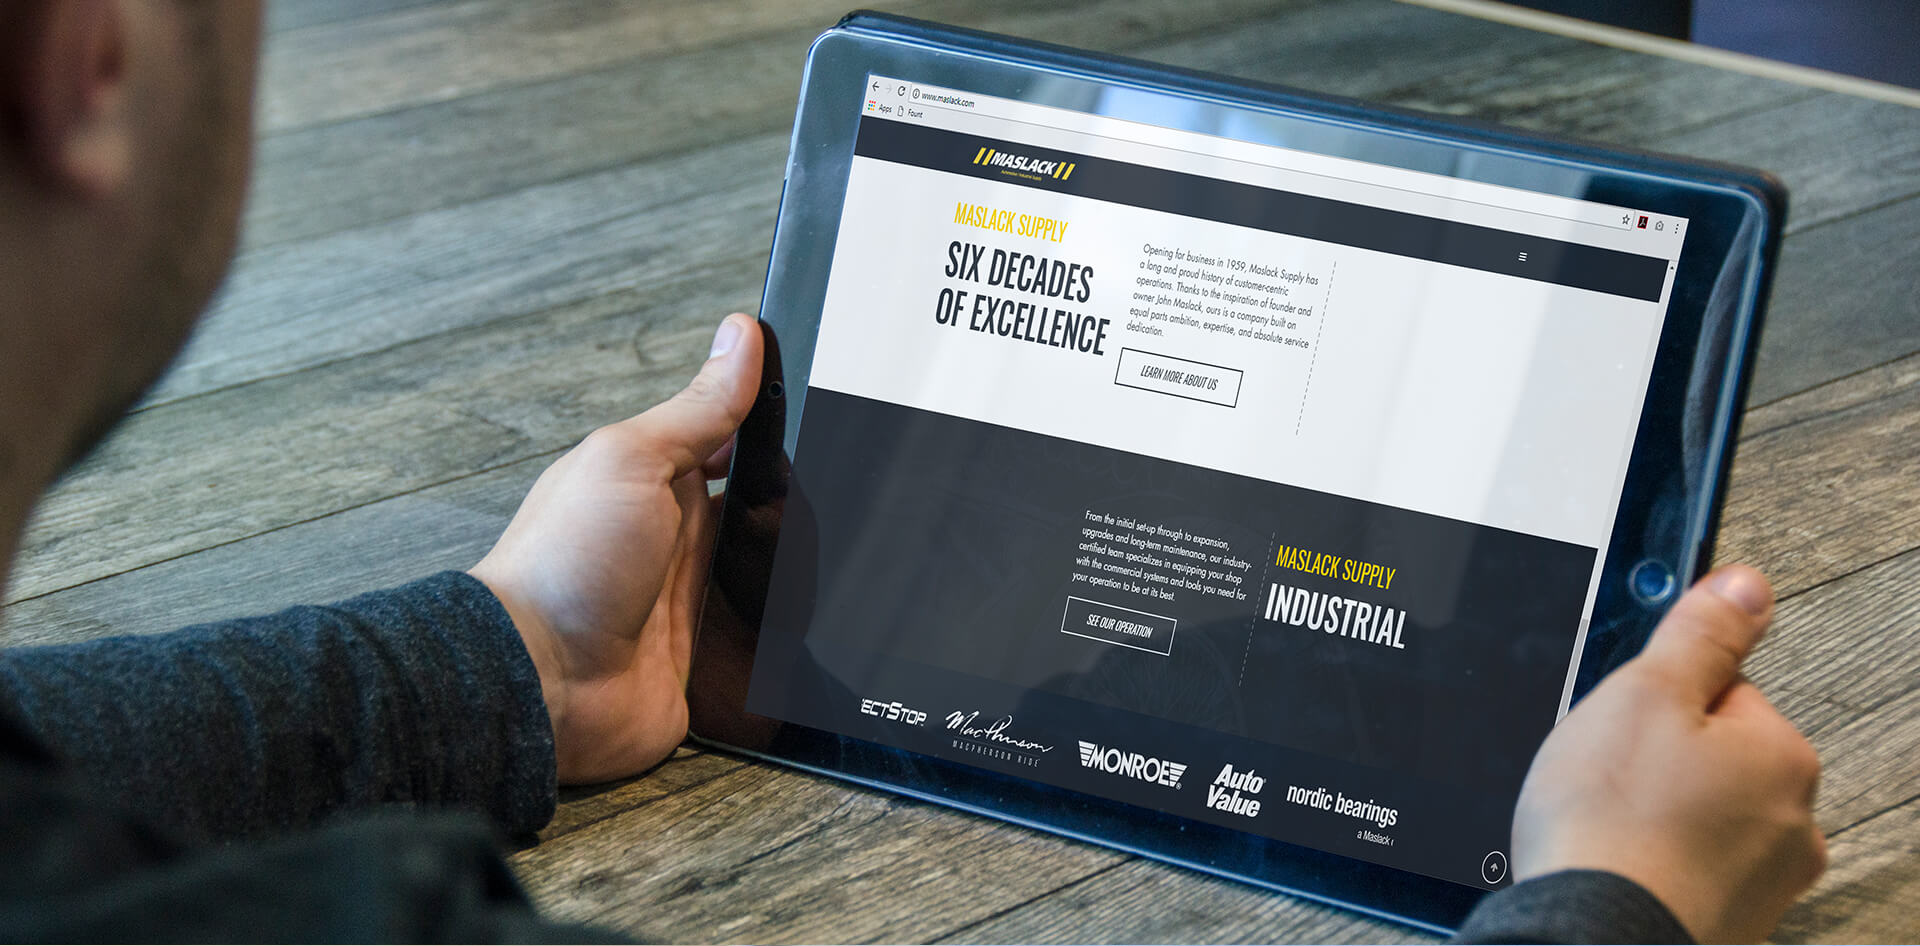 Maslack website open on a tablet